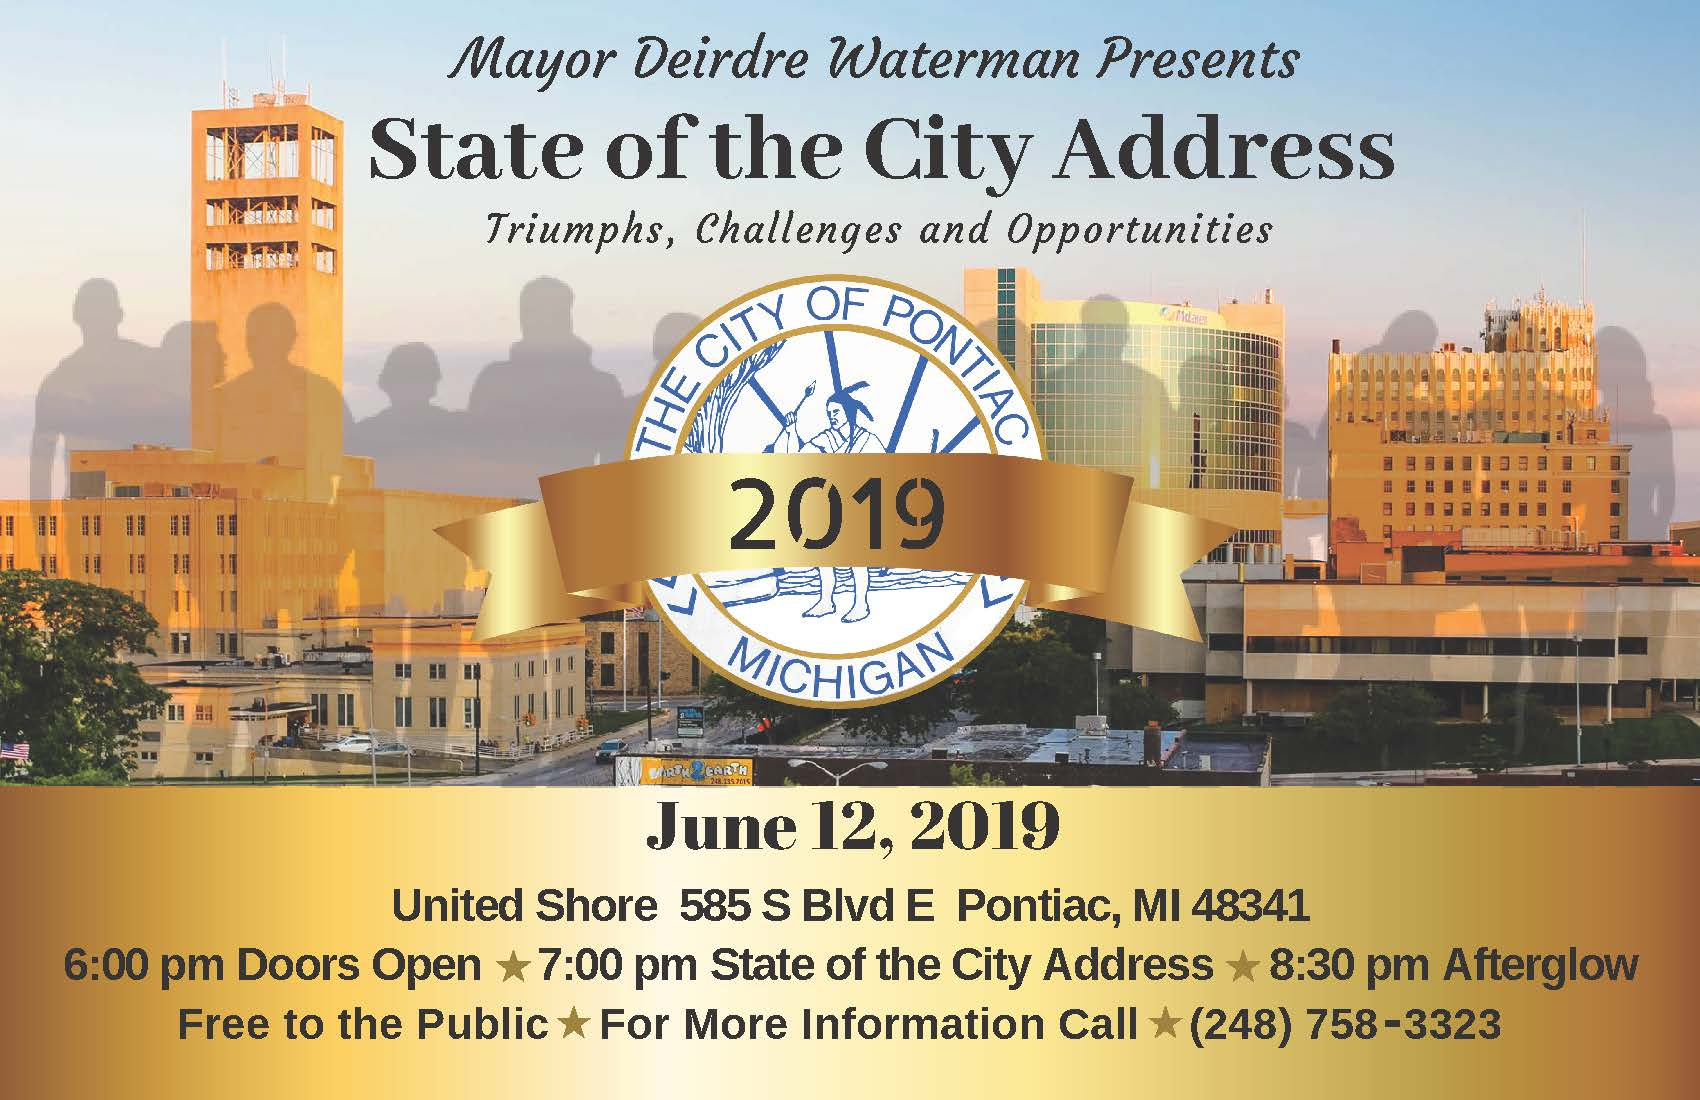 2019 City of Pontiac State of the City Address